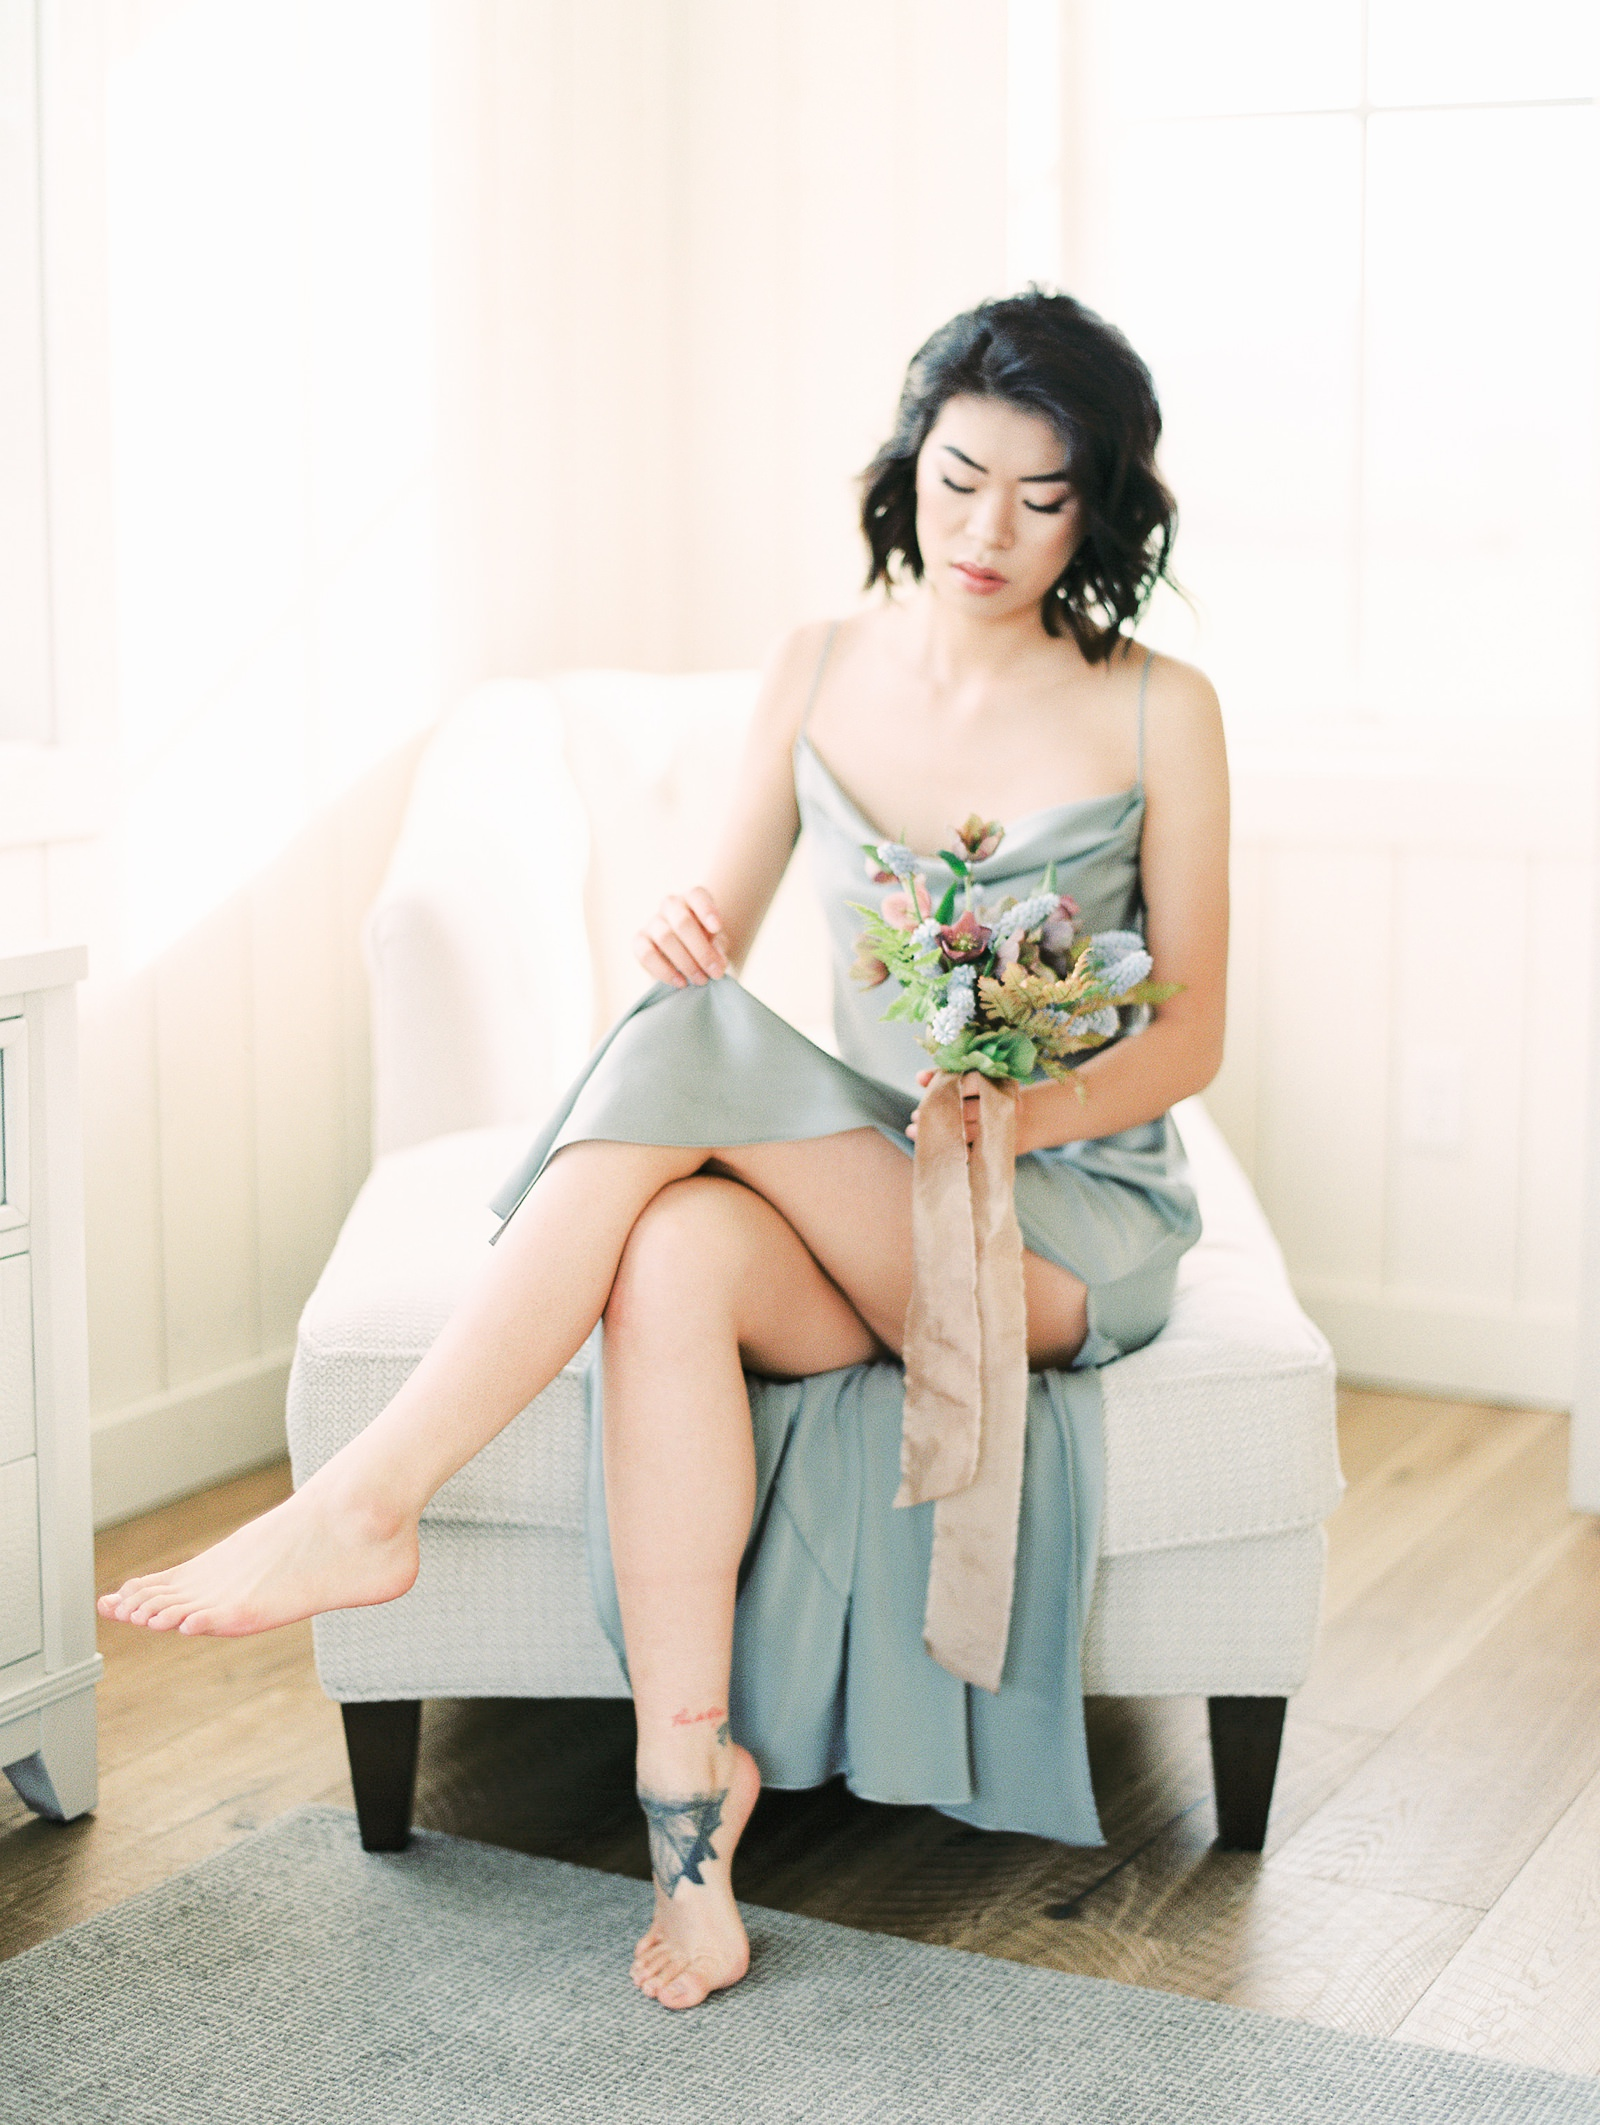 Heber Valley Classic and Clean bridal boudoir at River Bottoms Ranch, Utah film photography, blue silk nightgown